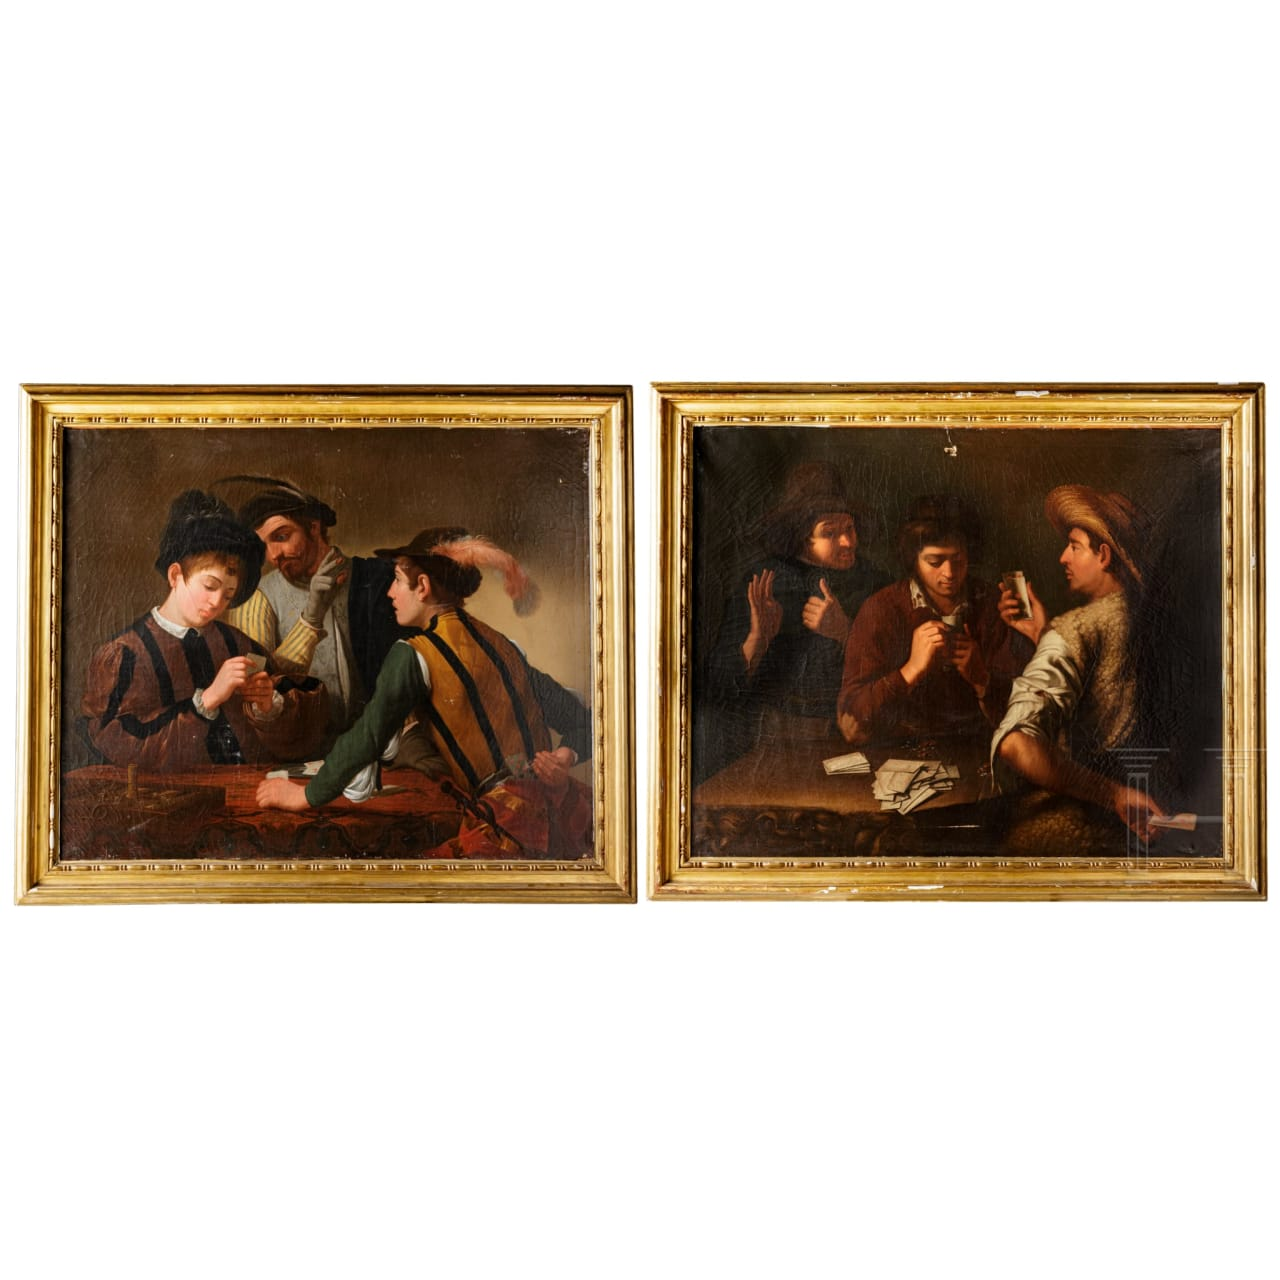 A pair of Italian Old Master paintings – The Card Sharpers, 17th century